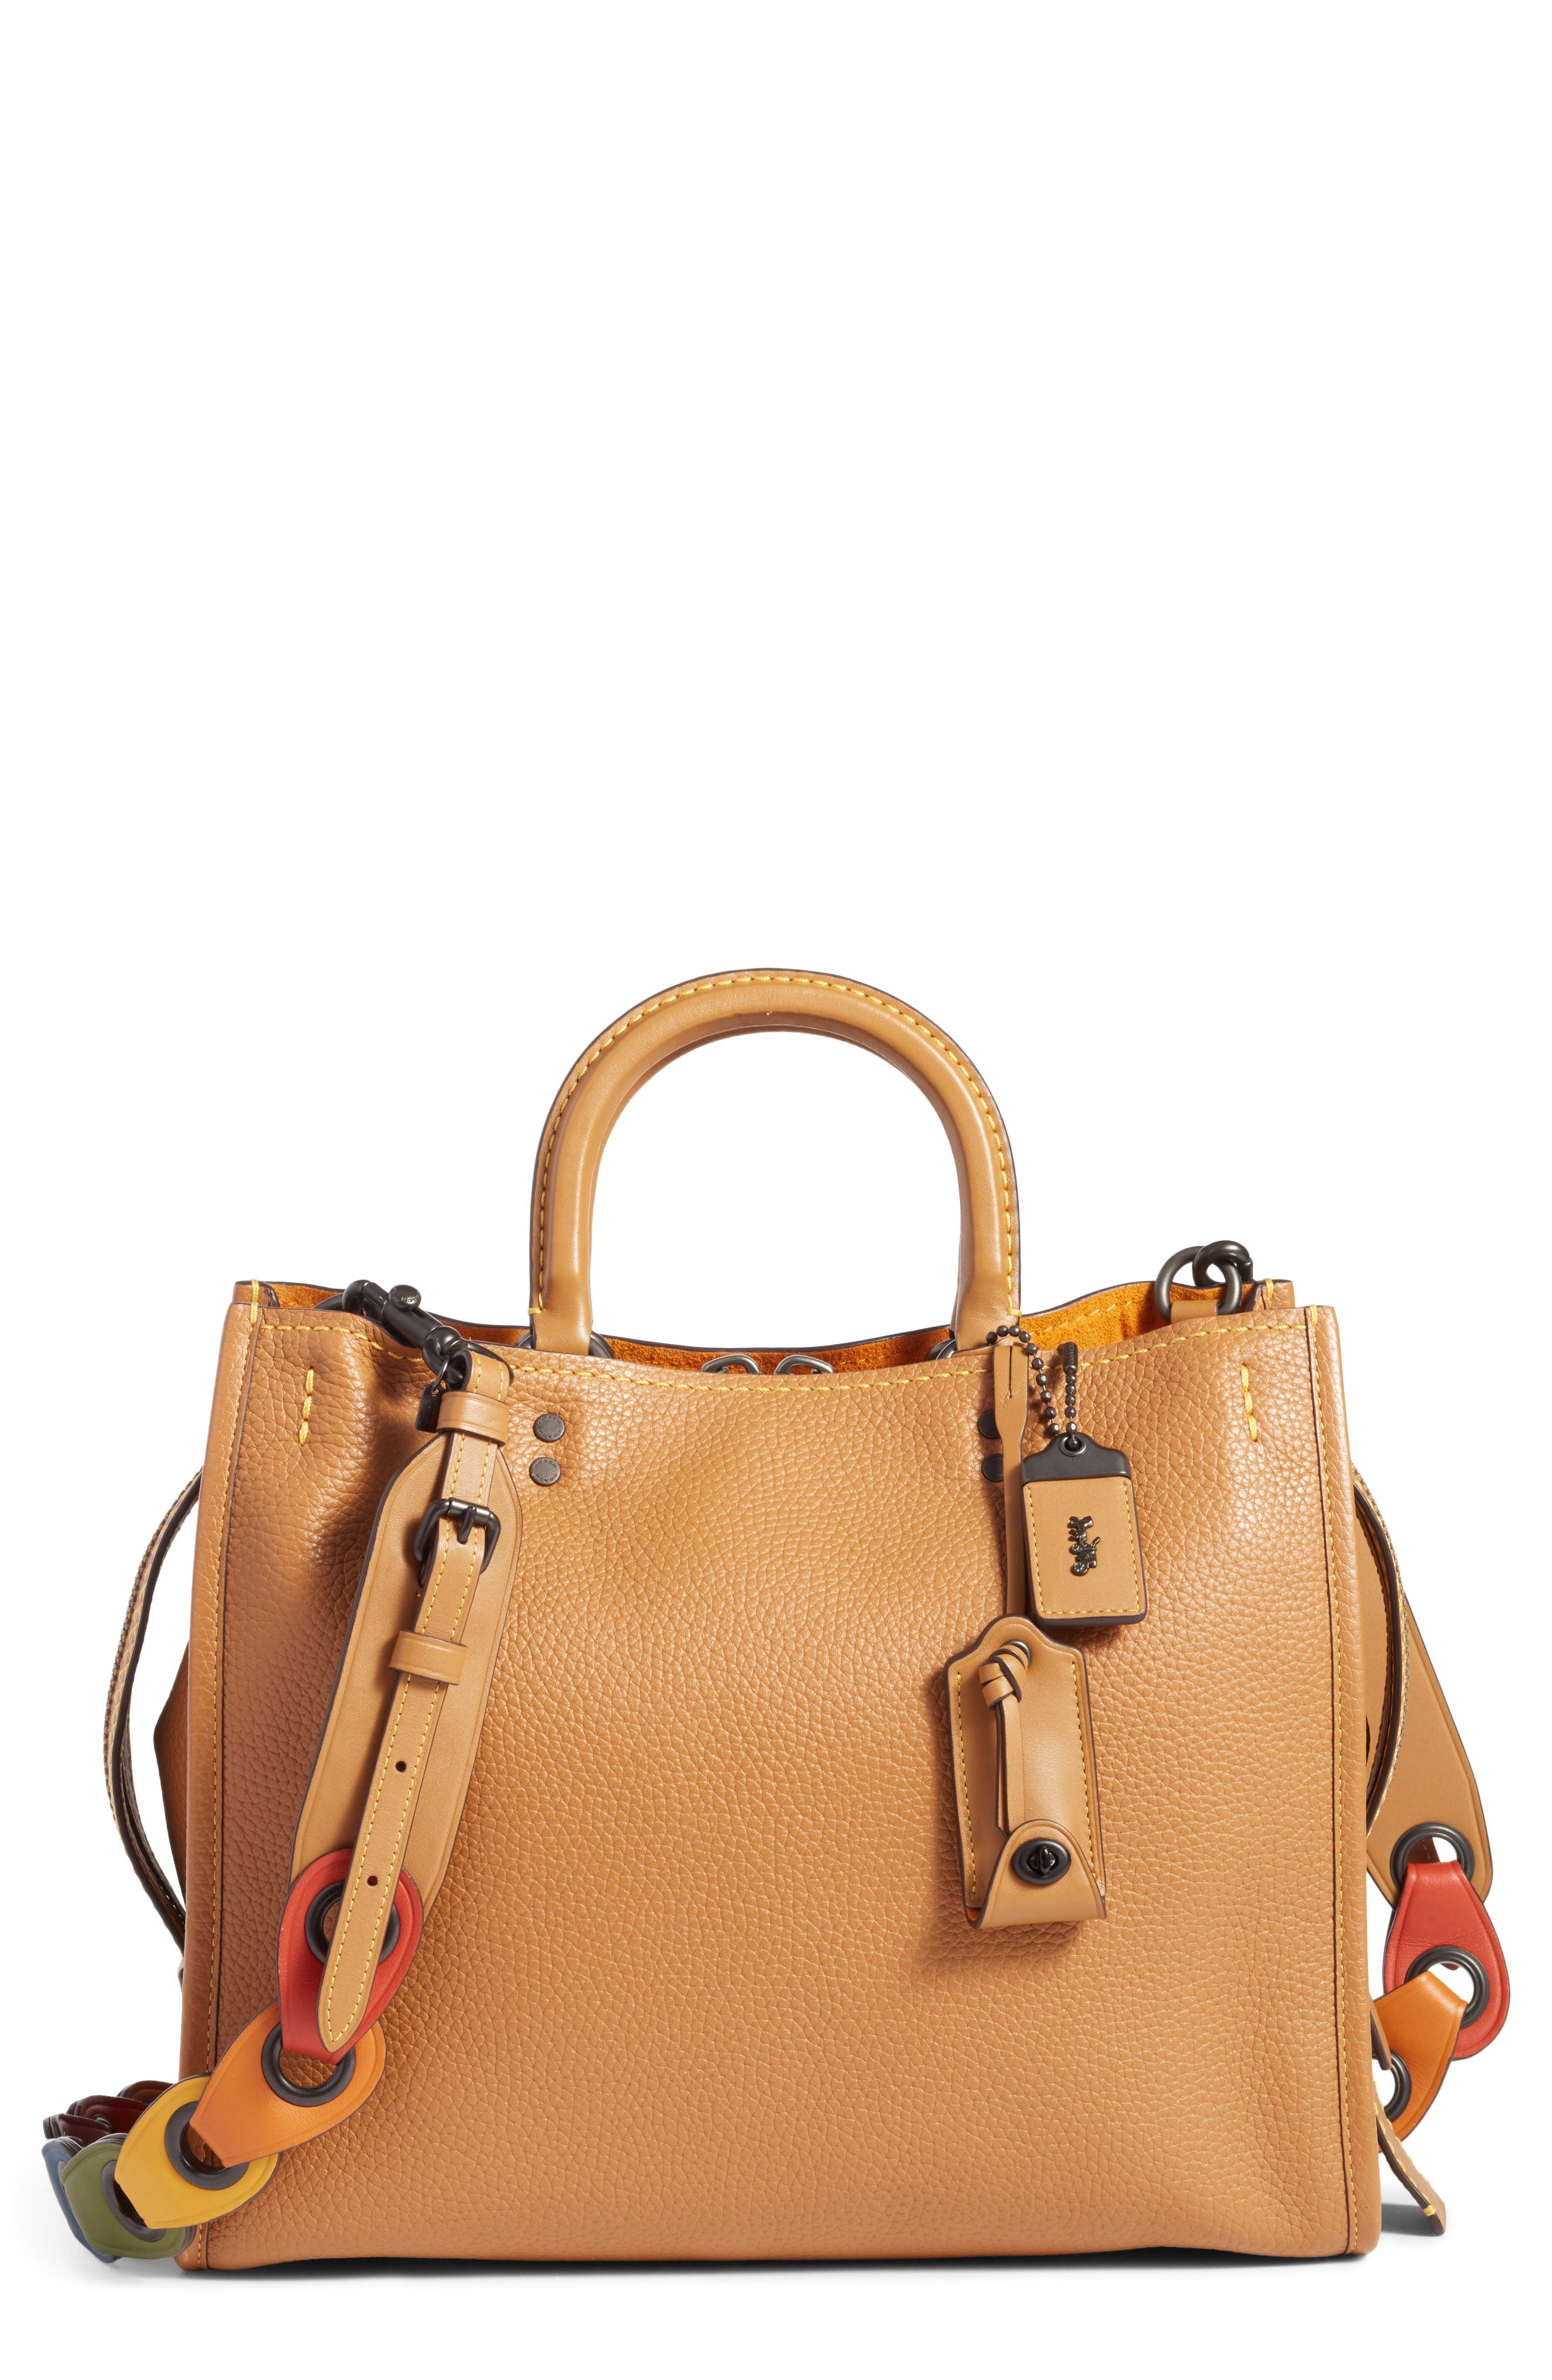 Rogue - Rainbow Link Calfskin Leather Satchel,                             Main thumbnail 1, color,                             Light Saddle Multi